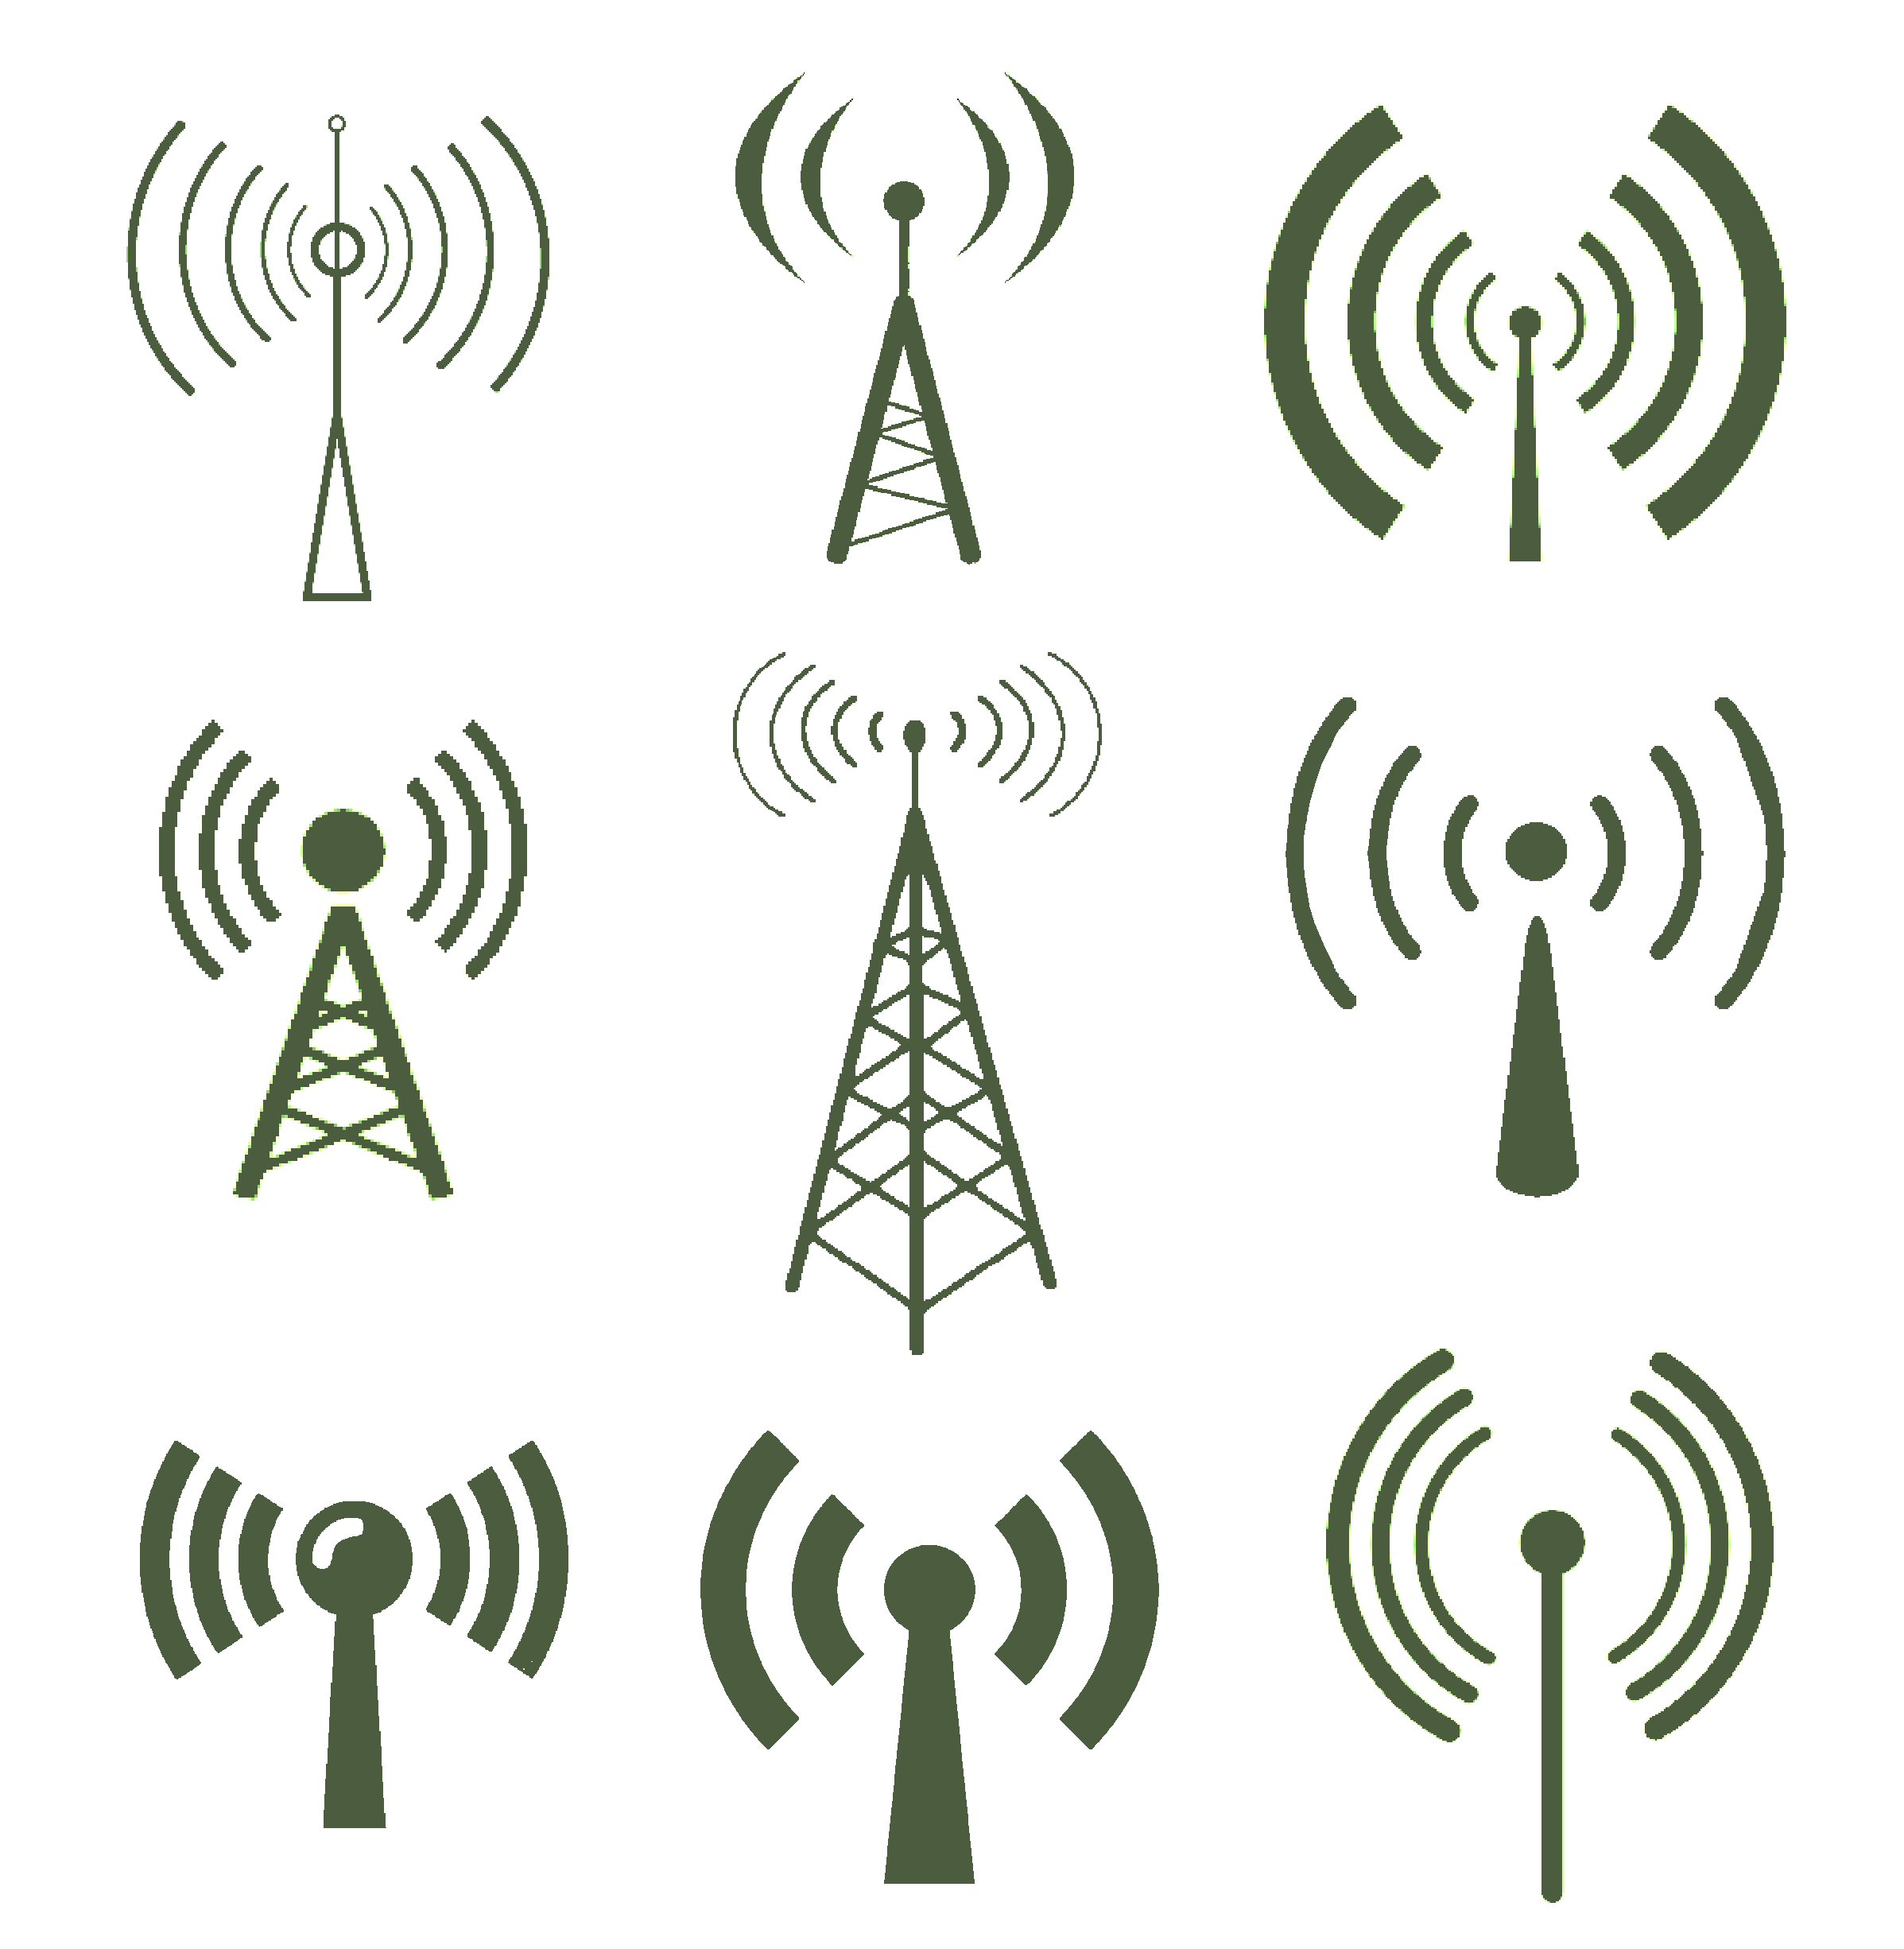 Wi-fi icons with  antennas.